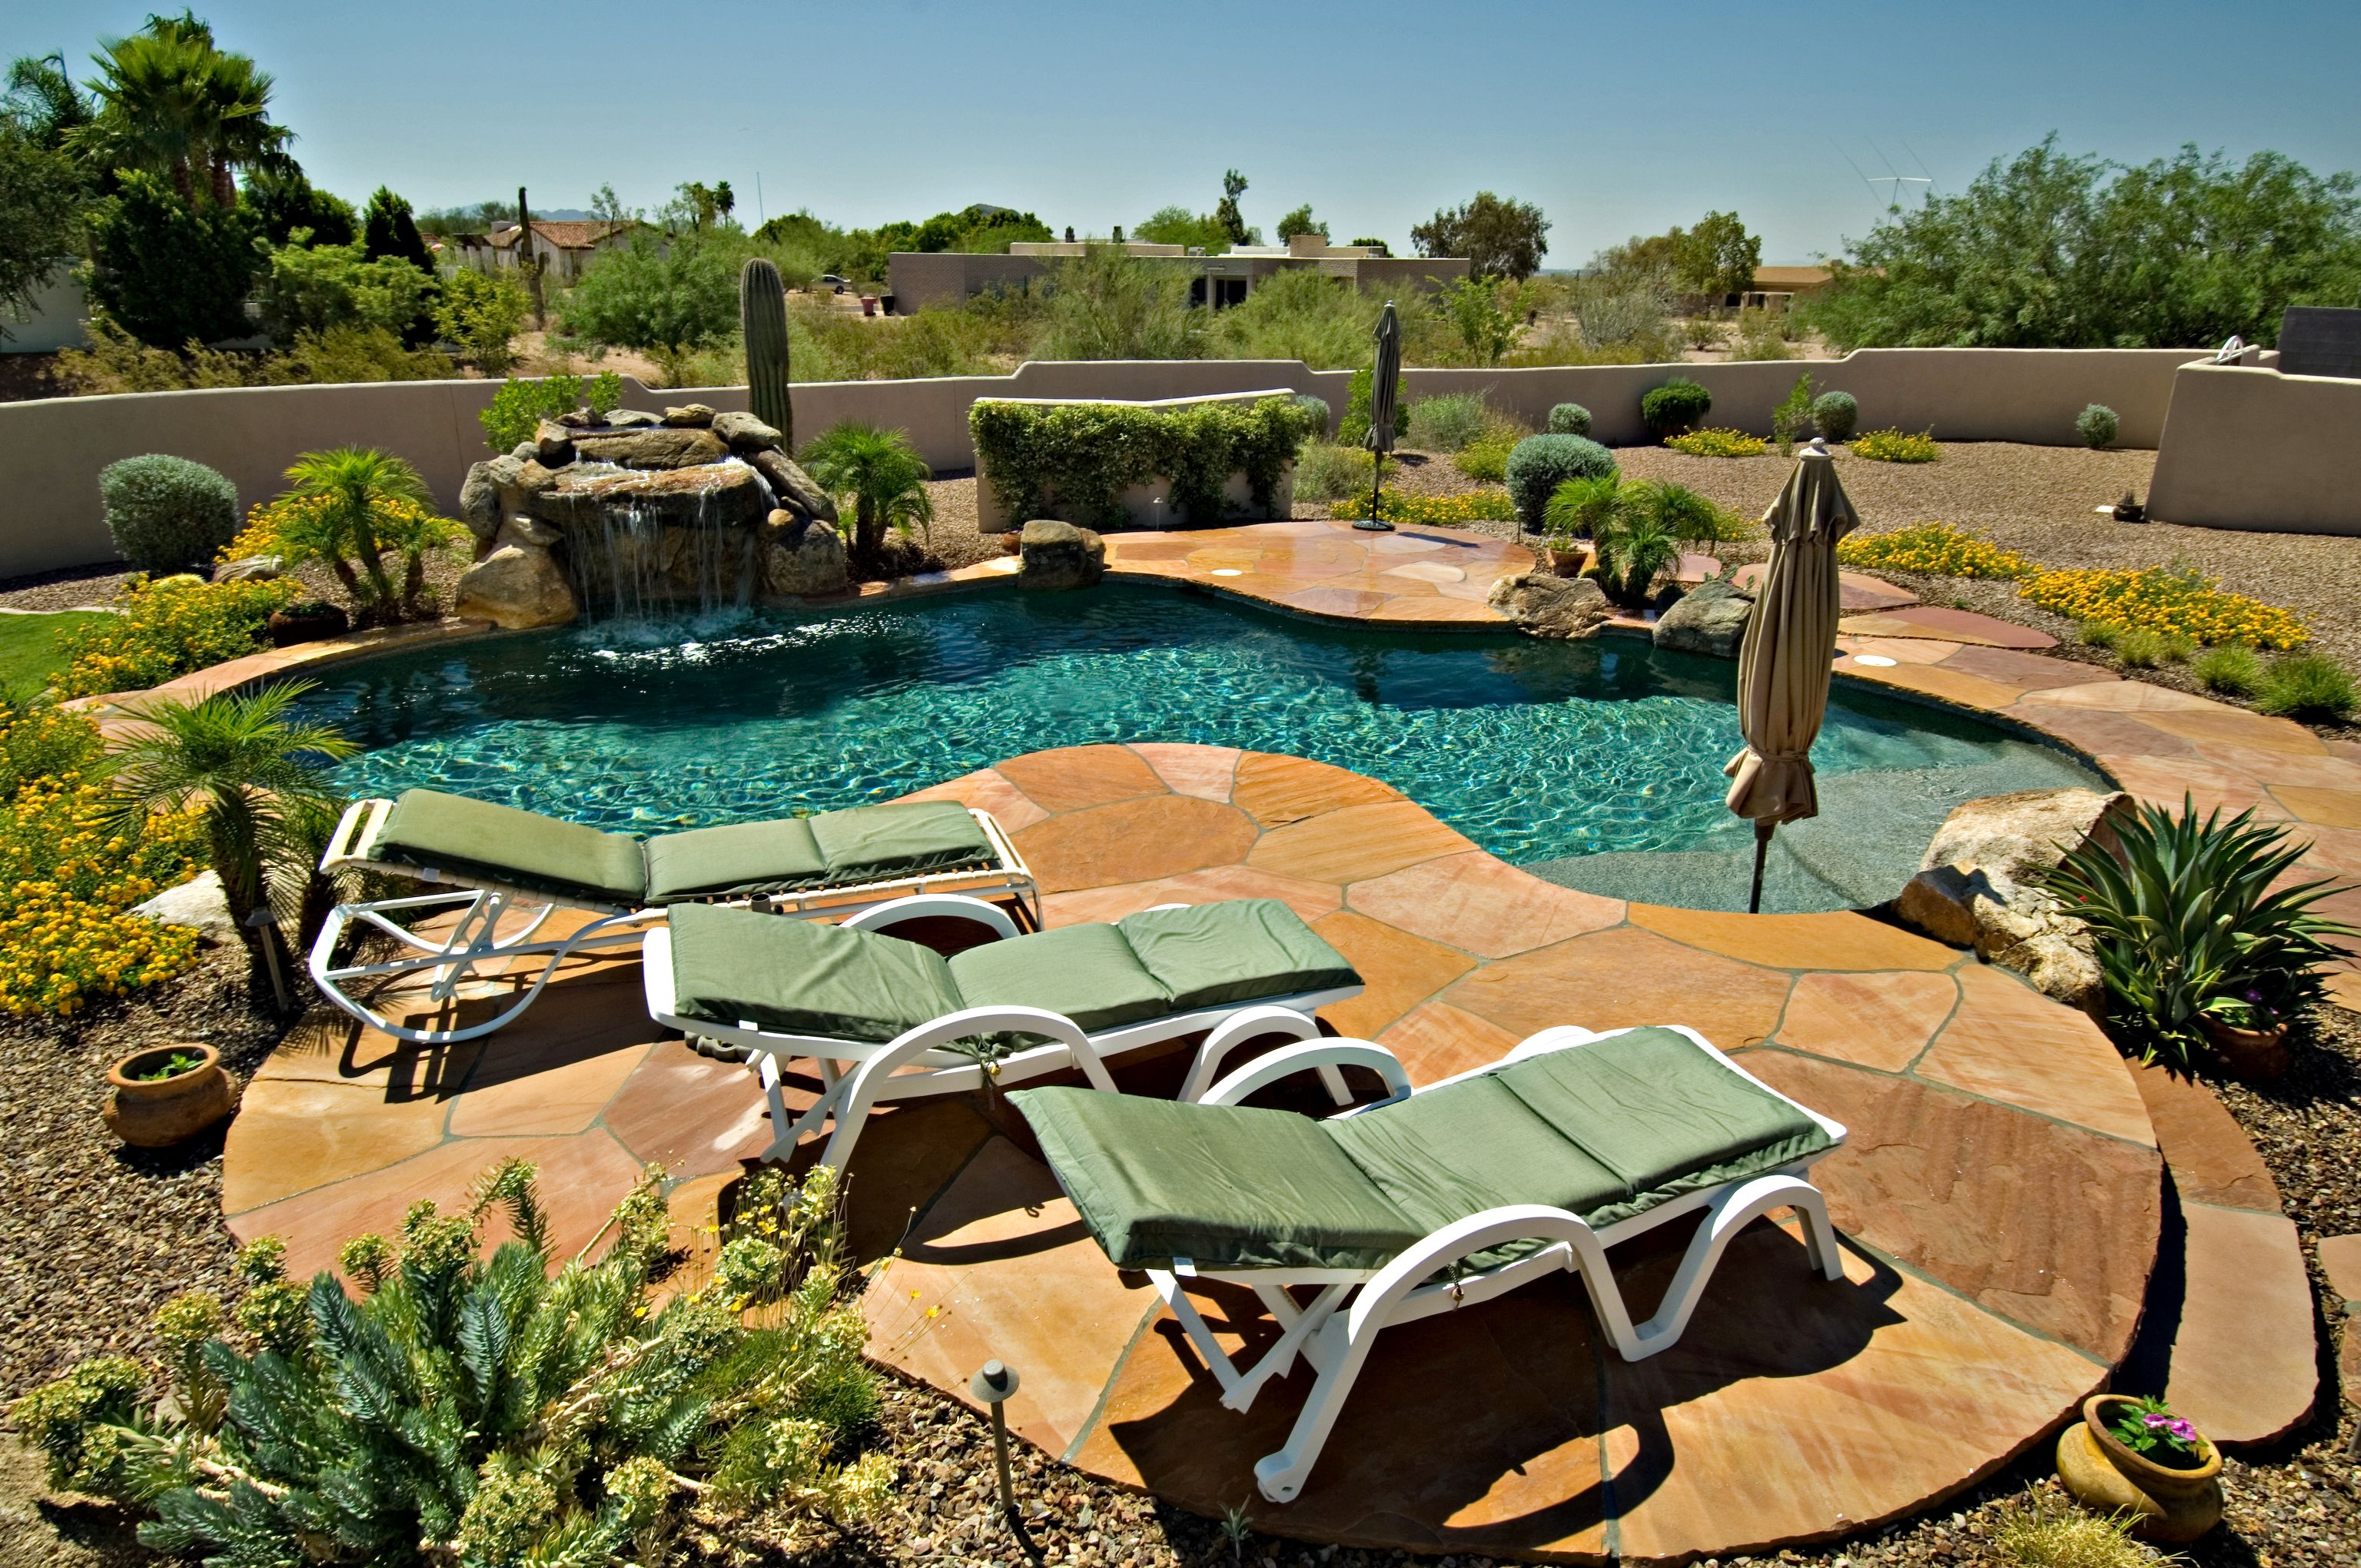 Backyard Pool Landscaping Ideas Arizona Backyard Backyard Pool